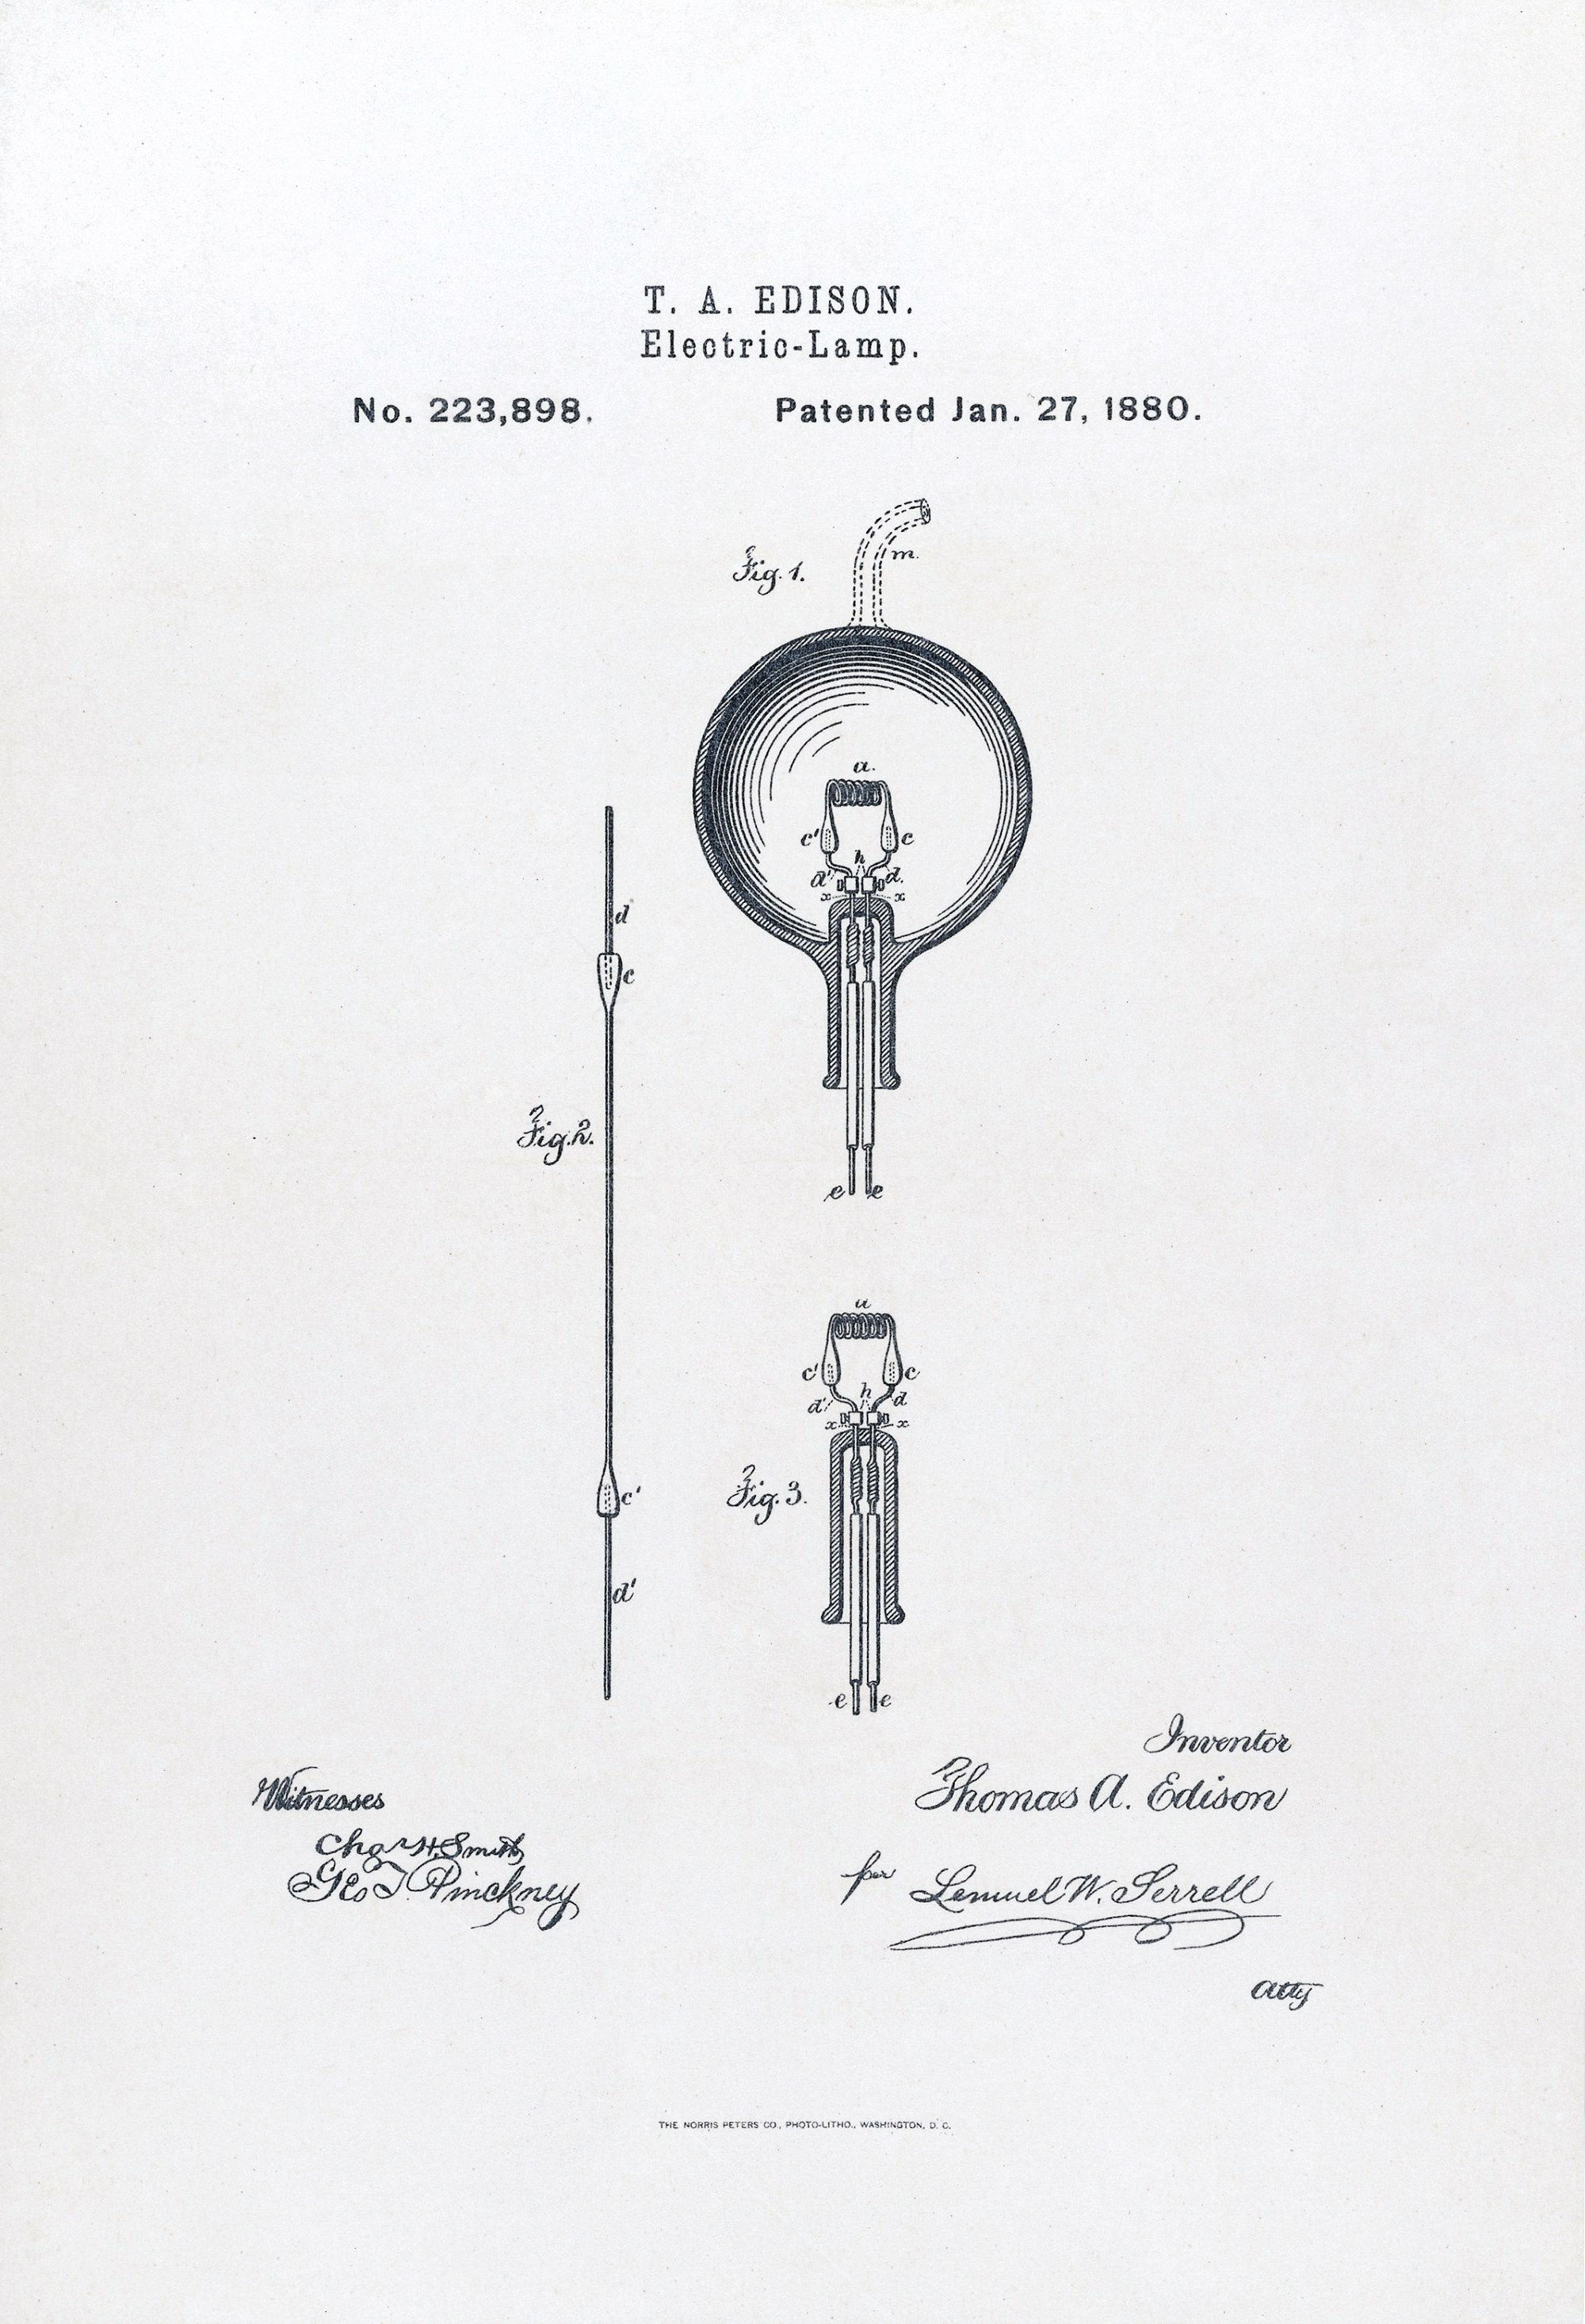 hight resolution of u s patent 223898 electric lamp issued january 27 1880